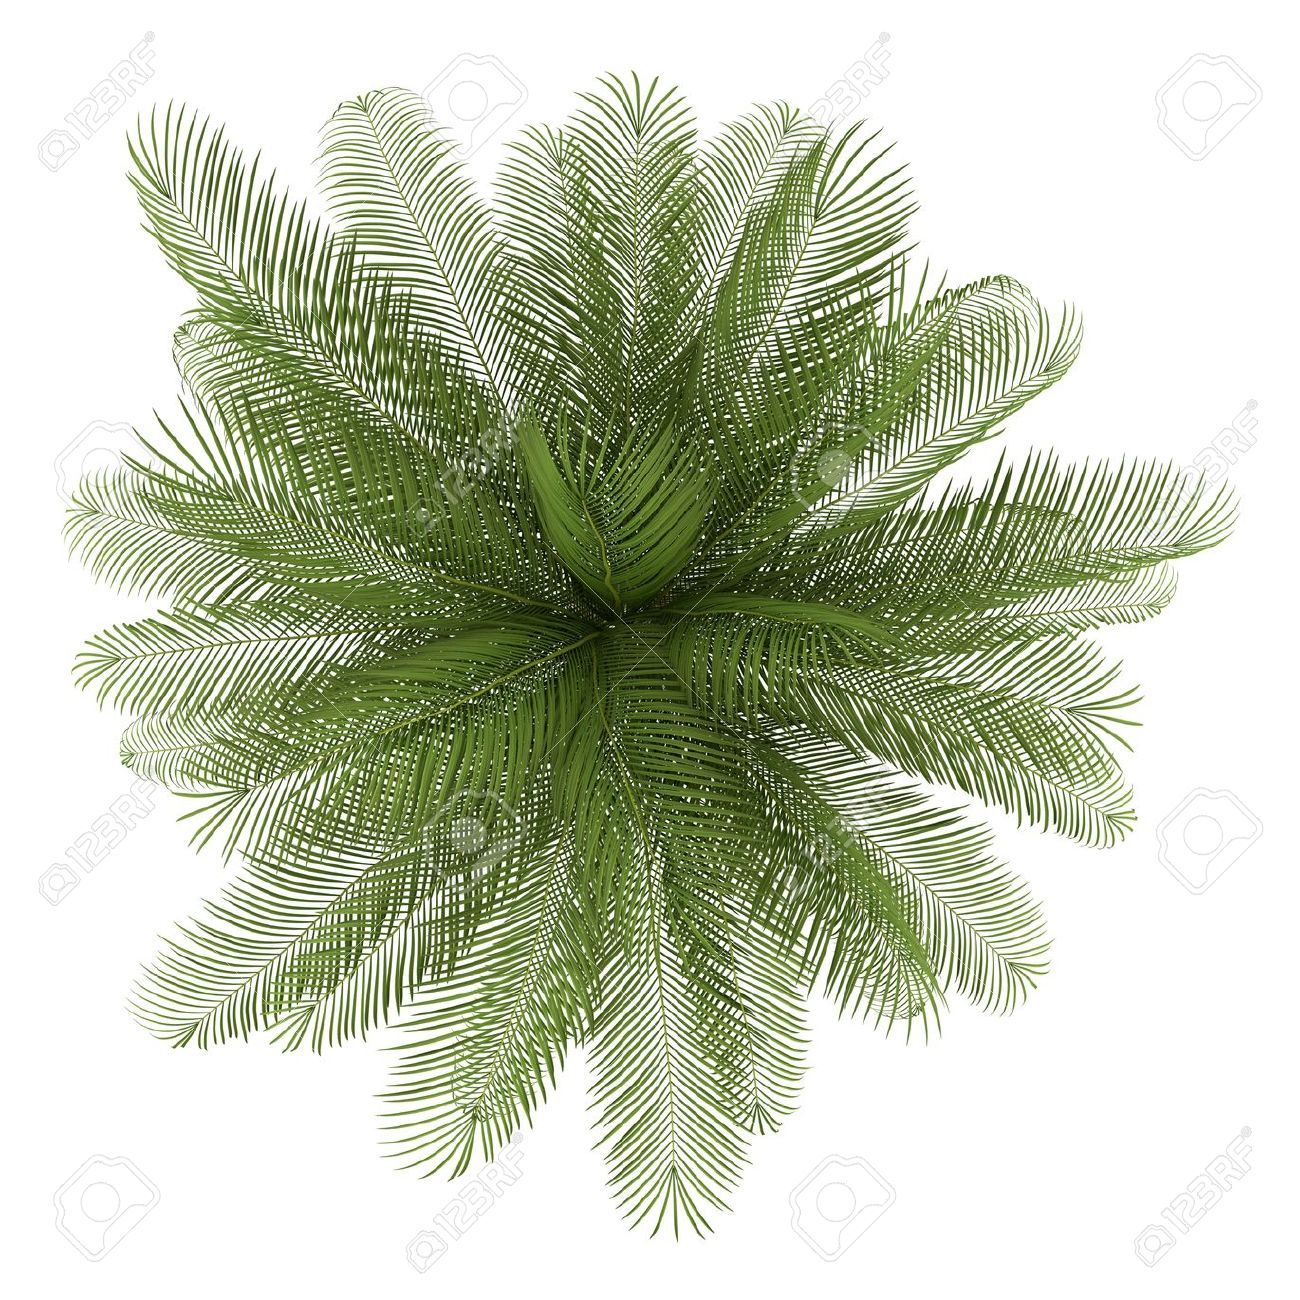 Bilderesultat for vector california palm trees plan | Trees ... for Palm Tree Top View Png  58lpg